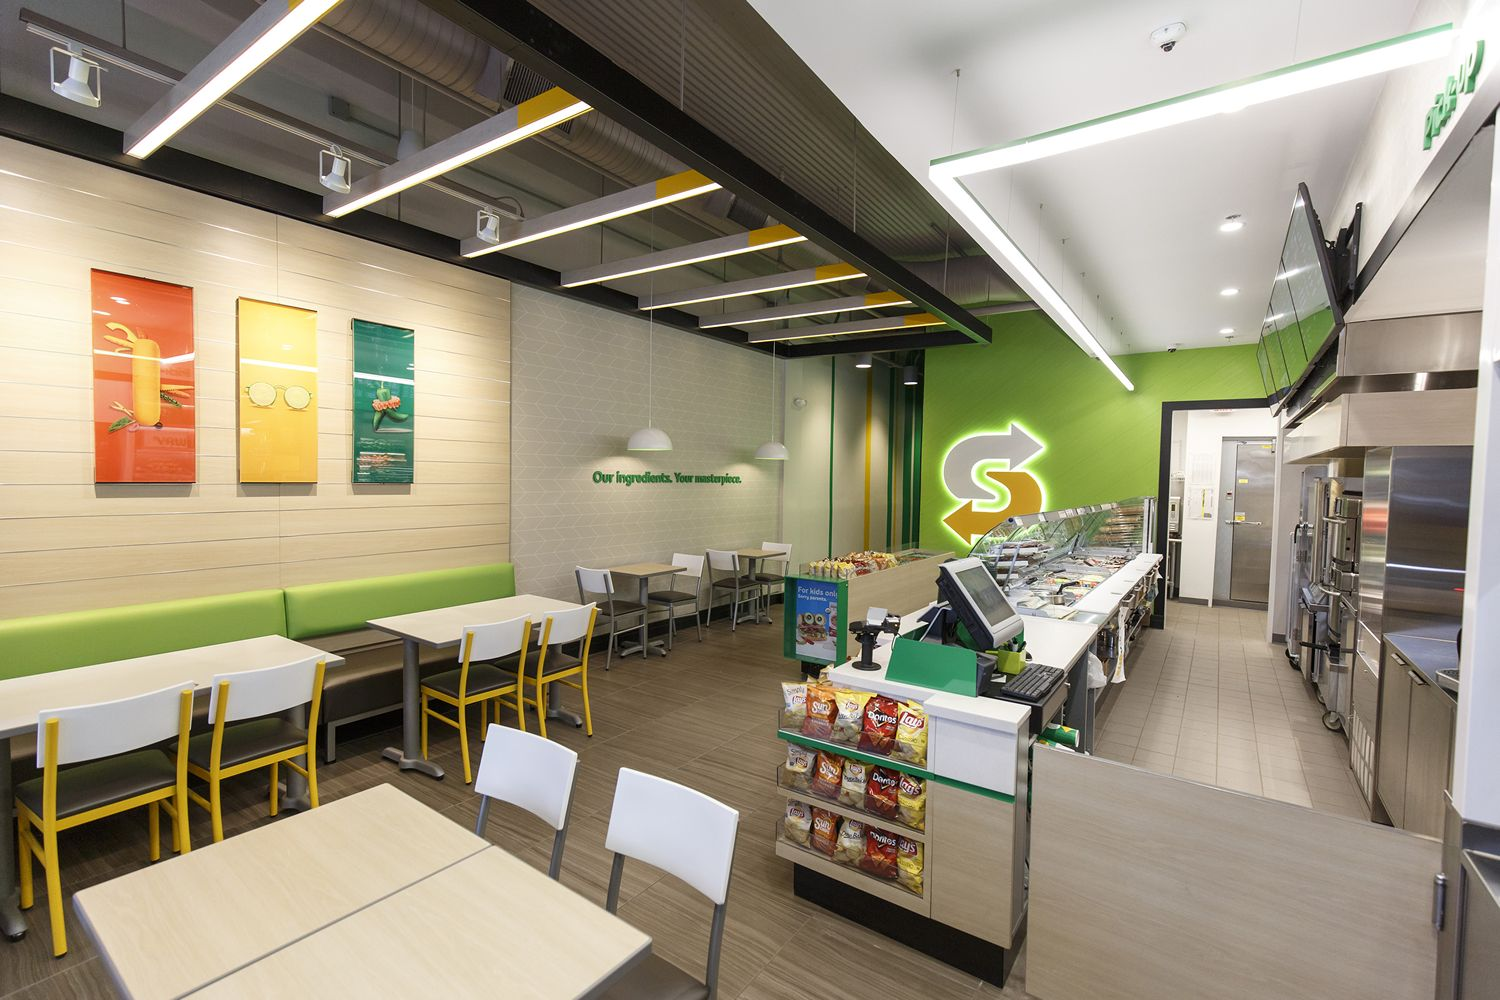 subway brings 39 fresh forward 39 with new restaurant design customer experience restaurant magazine. Black Bedroom Furniture Sets. Home Design Ideas